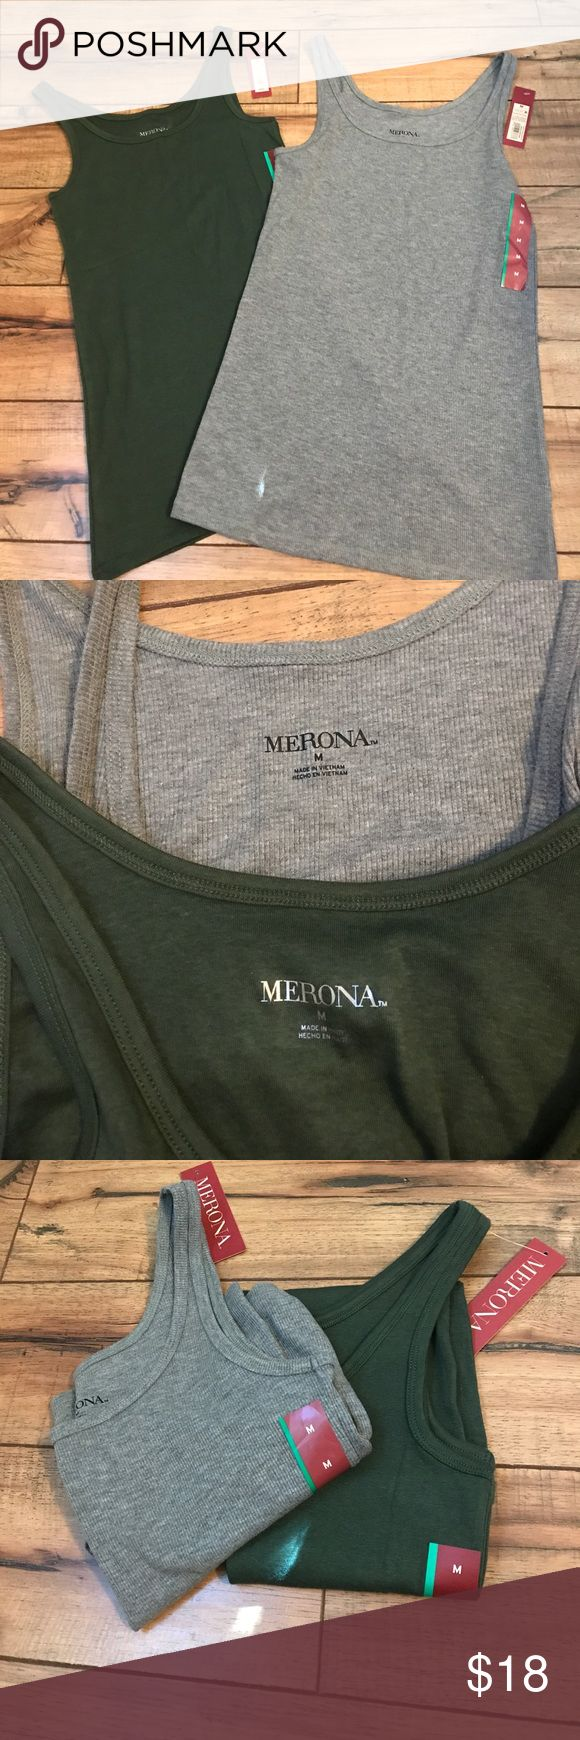 """2 pack! Merona layering tanks! So soft and perfect for layering this Fall- two tanks from Merona! One is grey (ribbed); the other is army green (not ribbed). Both are super soft with lots of stretch!  New with tags, size Medium  Measurements: (taken flat, not stretched) Pit to pit: 14"""" Shoulder to bottom hem: 26""""  All items come from a smoke free and kitty cat friendly home. Merona Tops Tank Tops"""